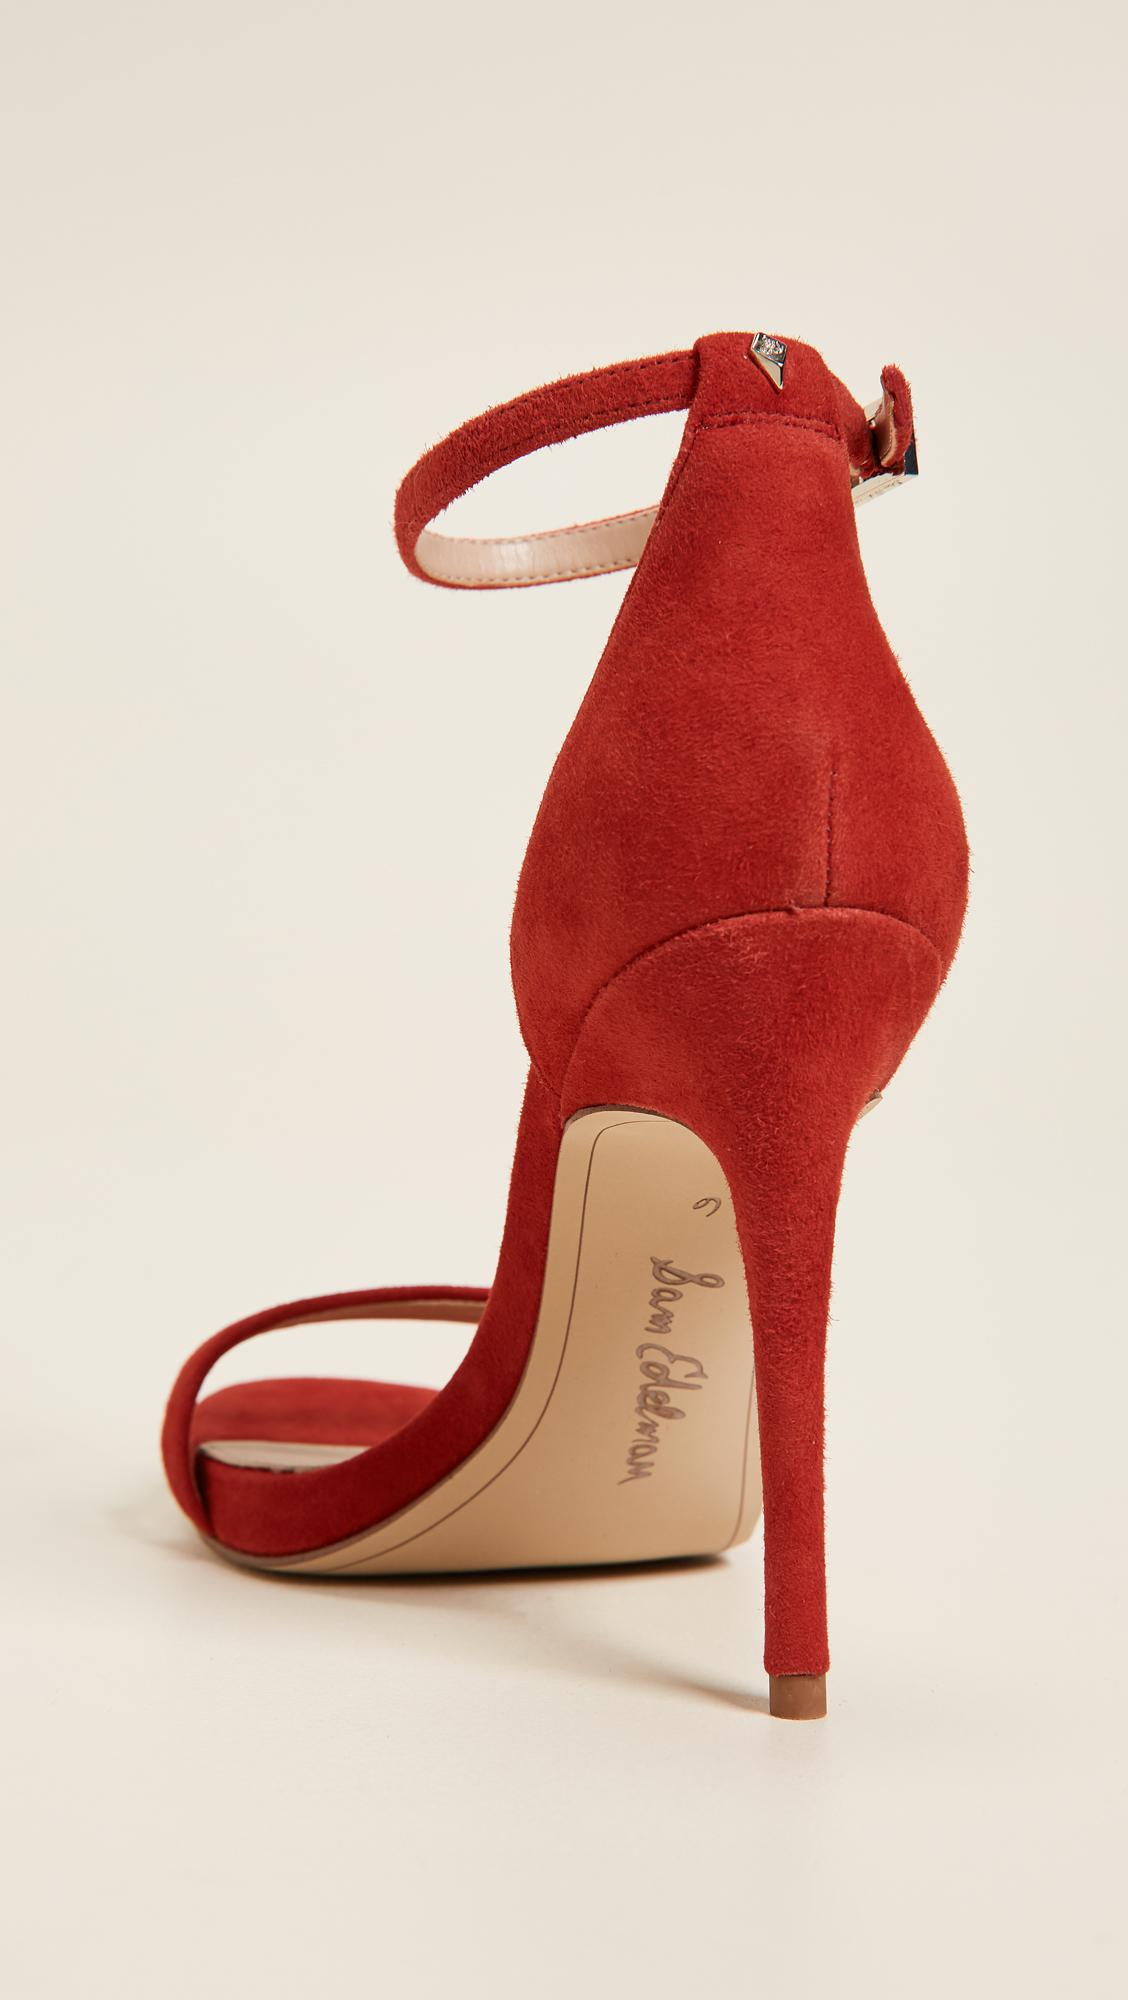 0f9ad008be3f Lyst - Sam Edelman Ariella Sandals in Red